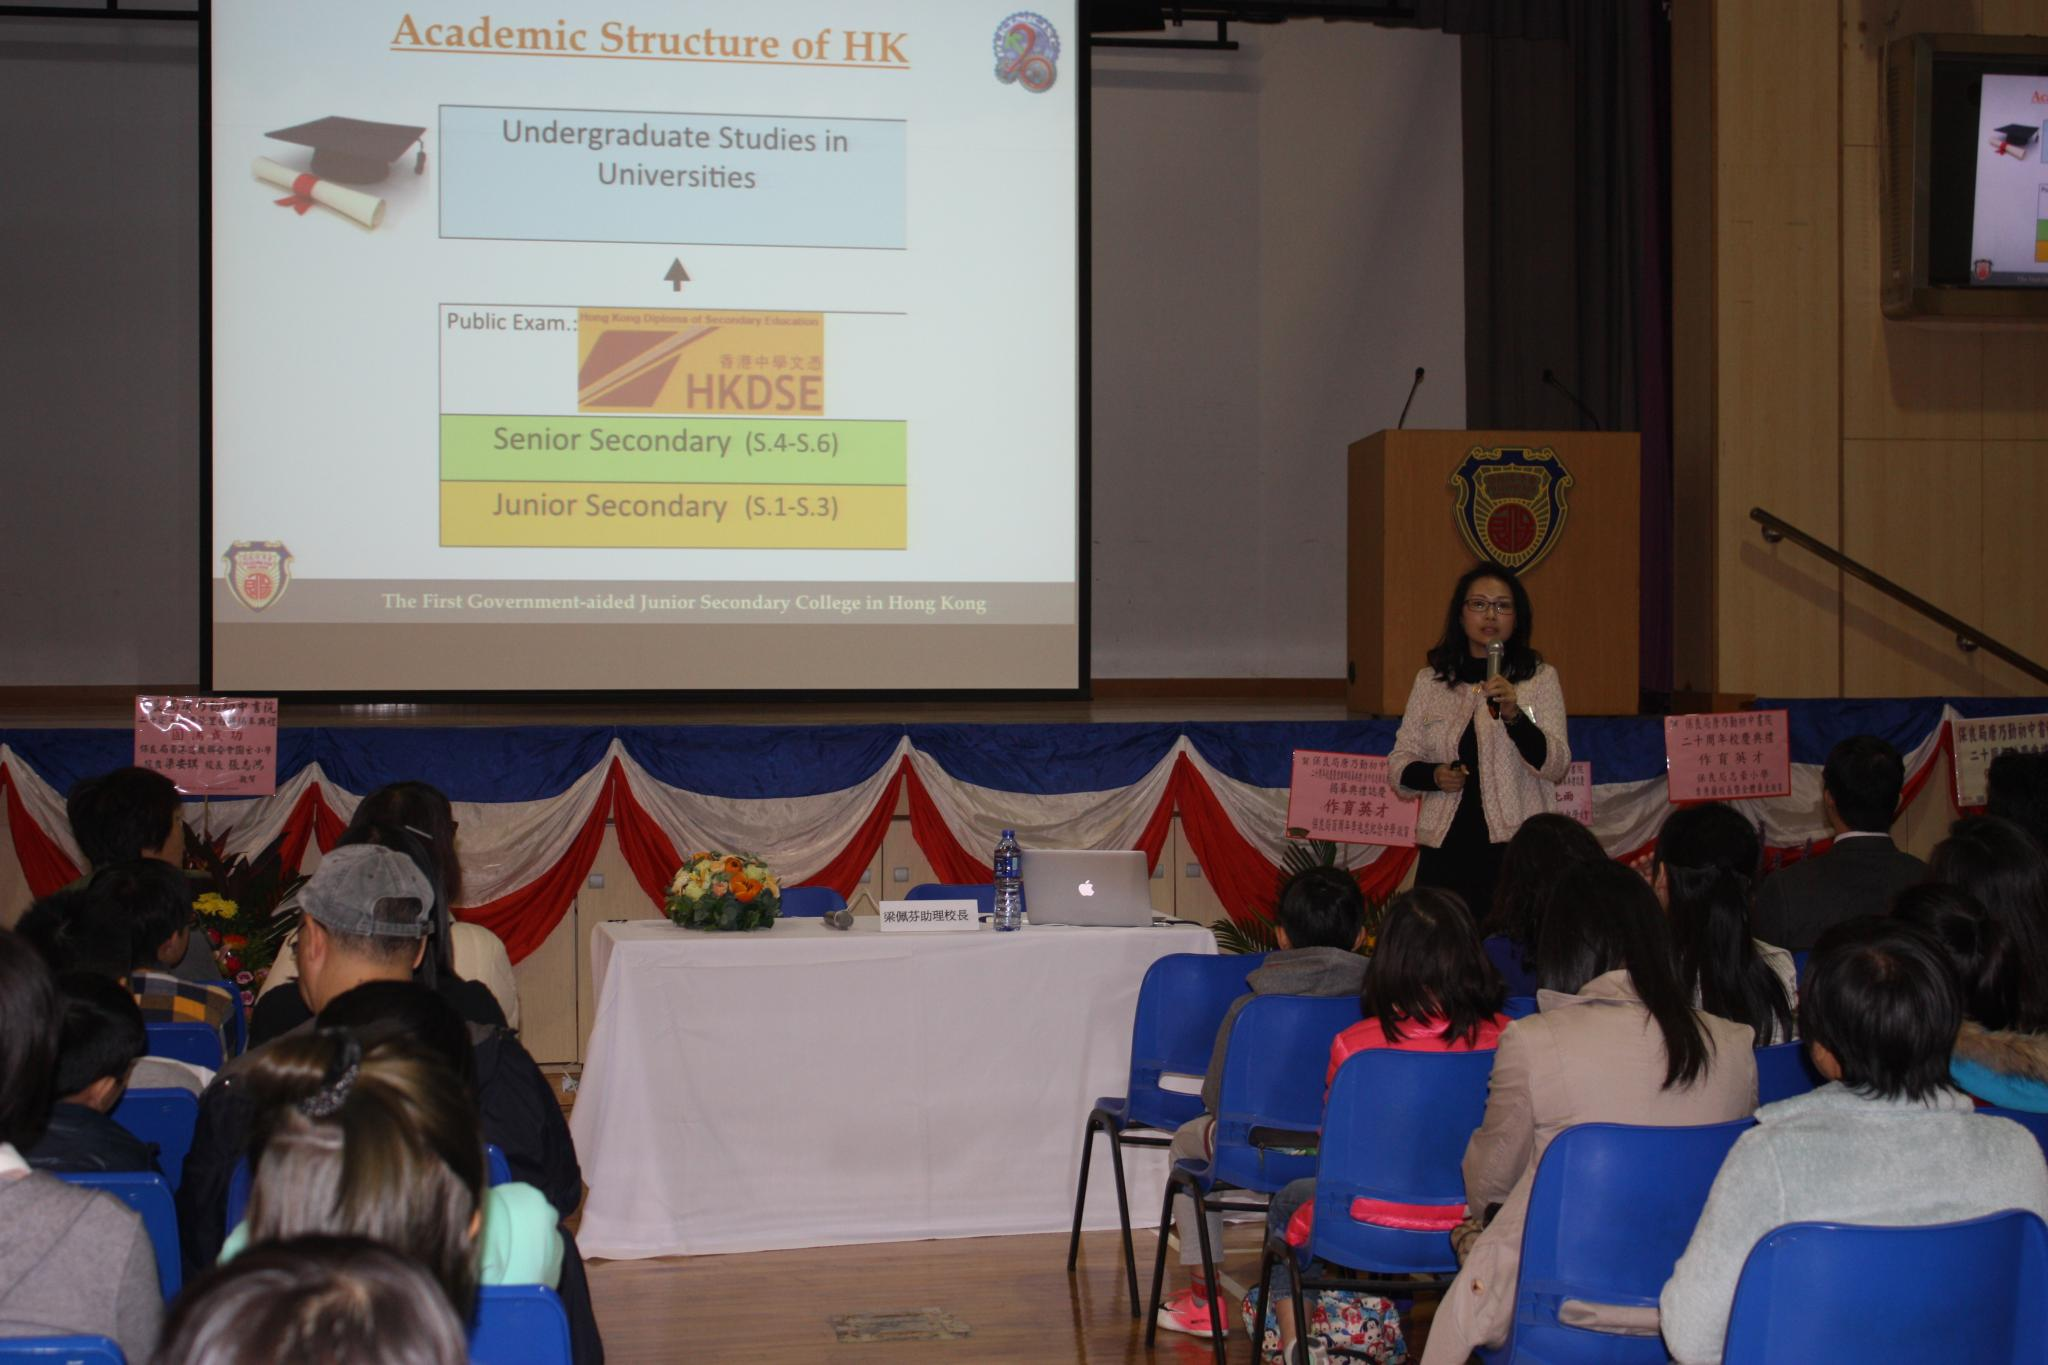 Ms Leung Pui Fan, the Assistant Principal of TNK, is introducing the school in the admission talk.